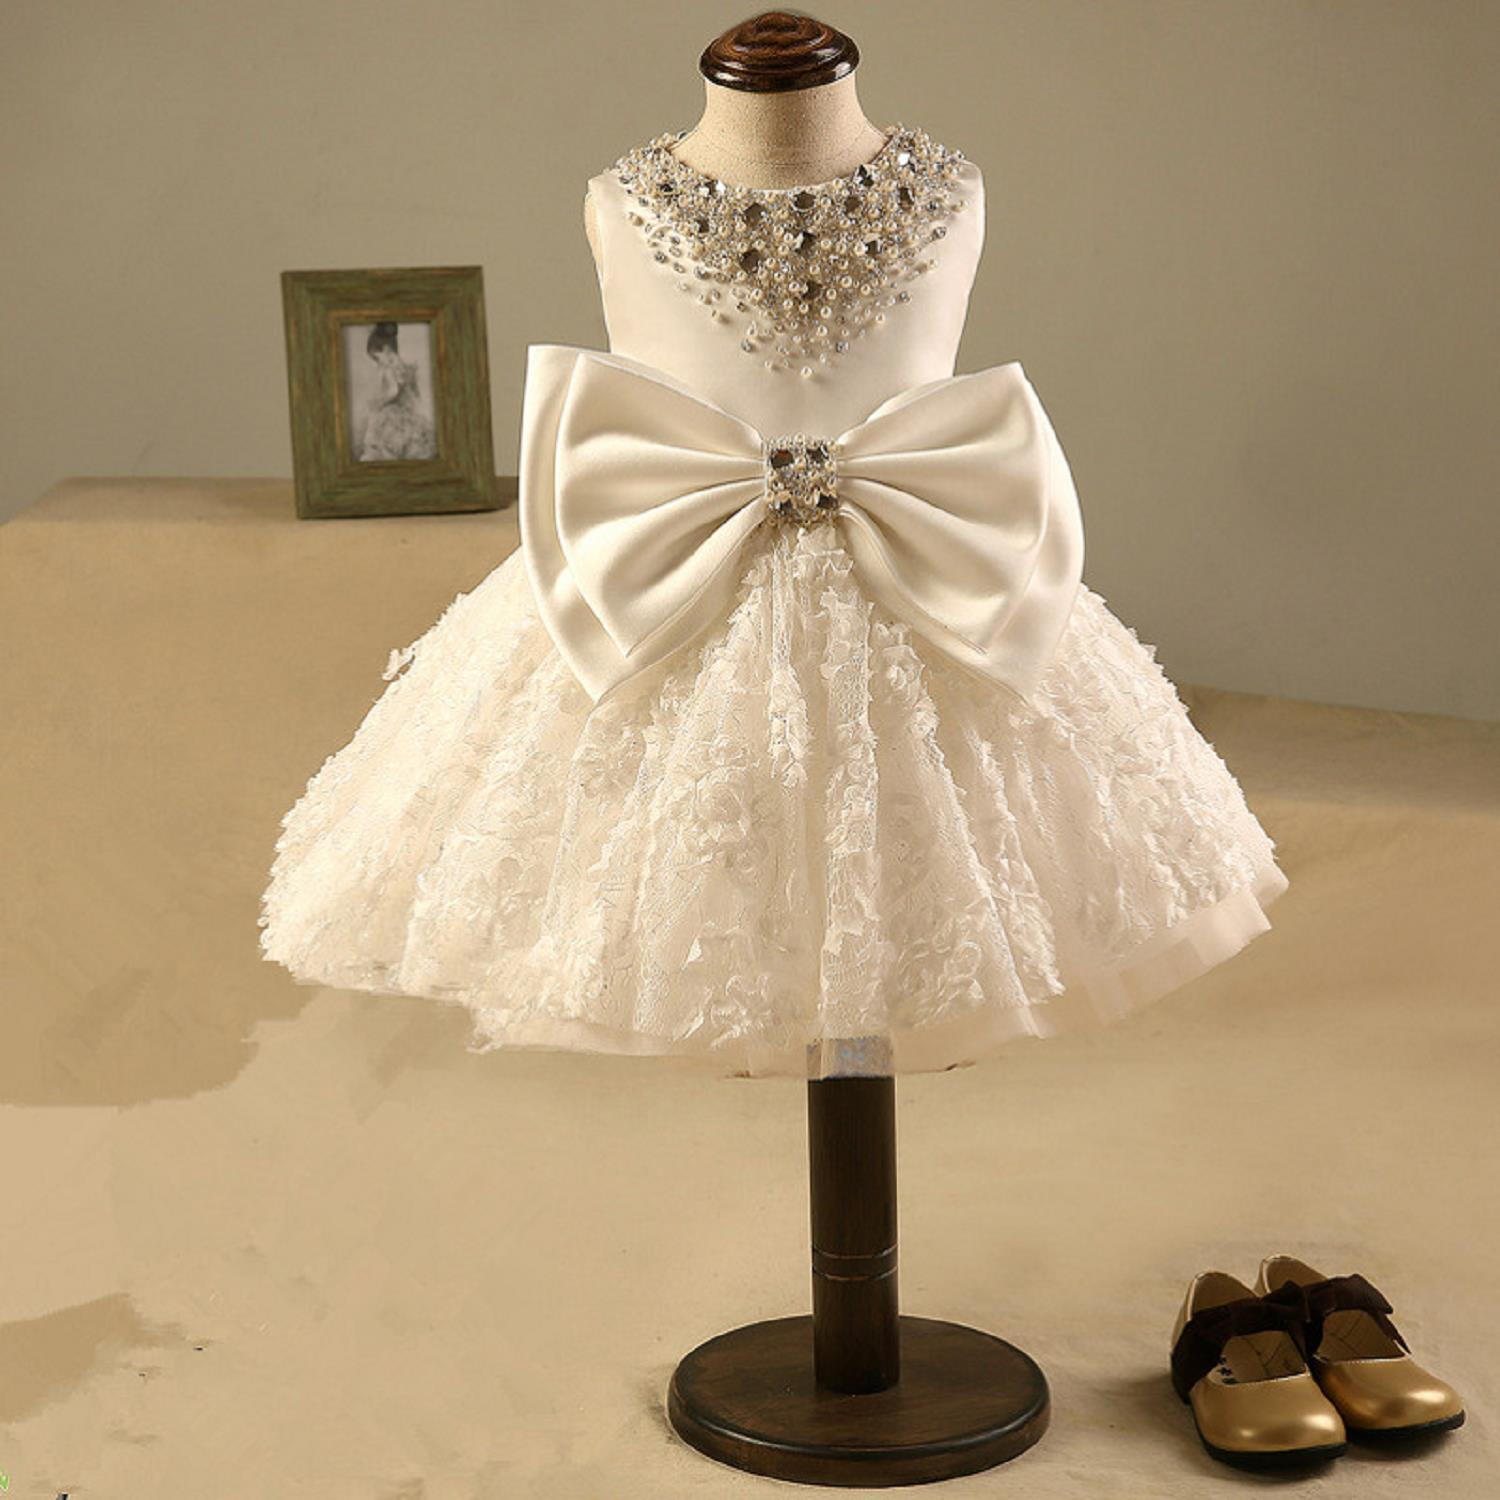 Luxury Baby Girls Pageant Dress For Christmas Costume Sleeveless Princess Dress Ball gown Flower Girl Dresses